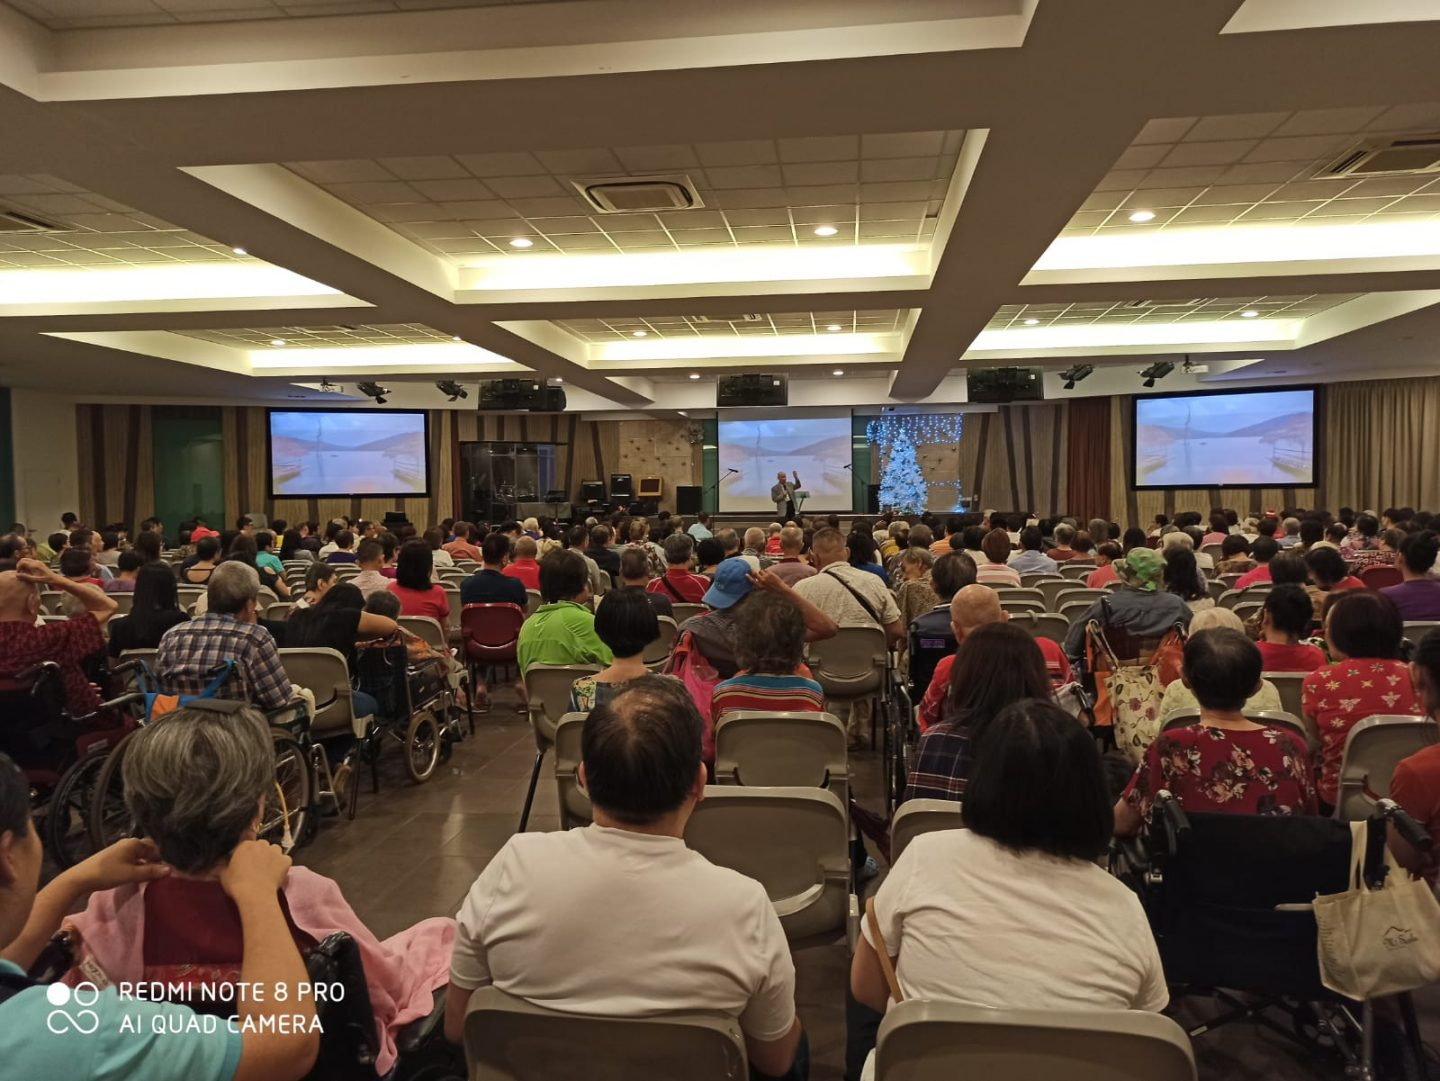 A whopping 75% of the elderly Hokkien congregation at Bethesda Bedok-Tampines Church do not have WiFi in their homes, said Ps Sharon Liau. Photo courtesy of BBTC.